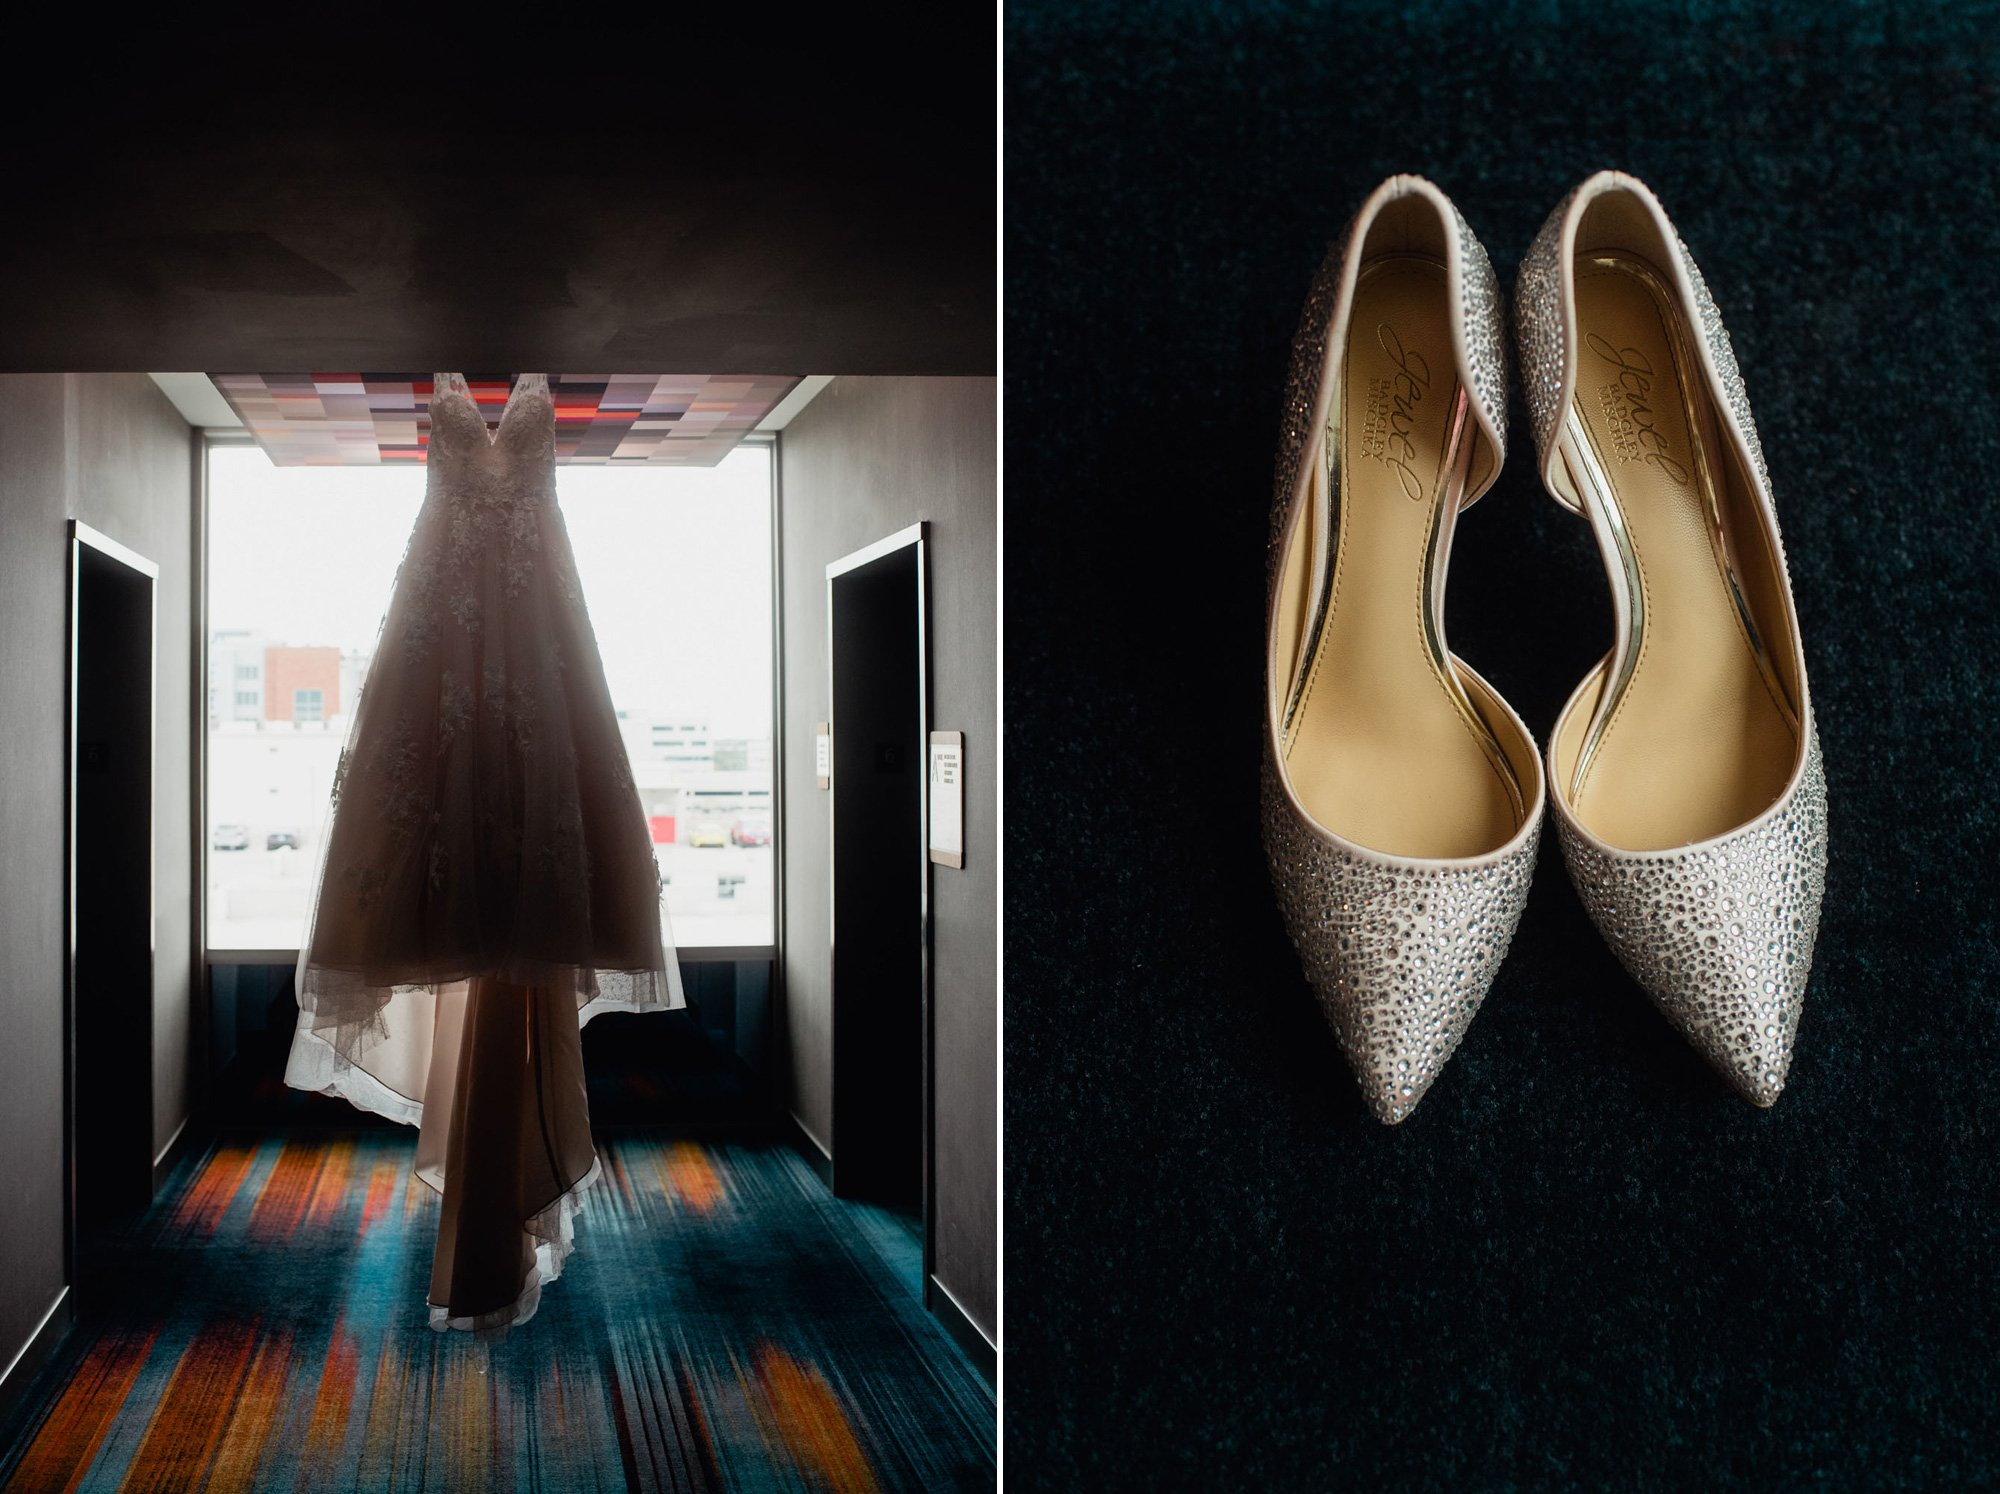 wedding details at a hotel, getting ready detail photos of dress and shoes, creative dress shot in hotel